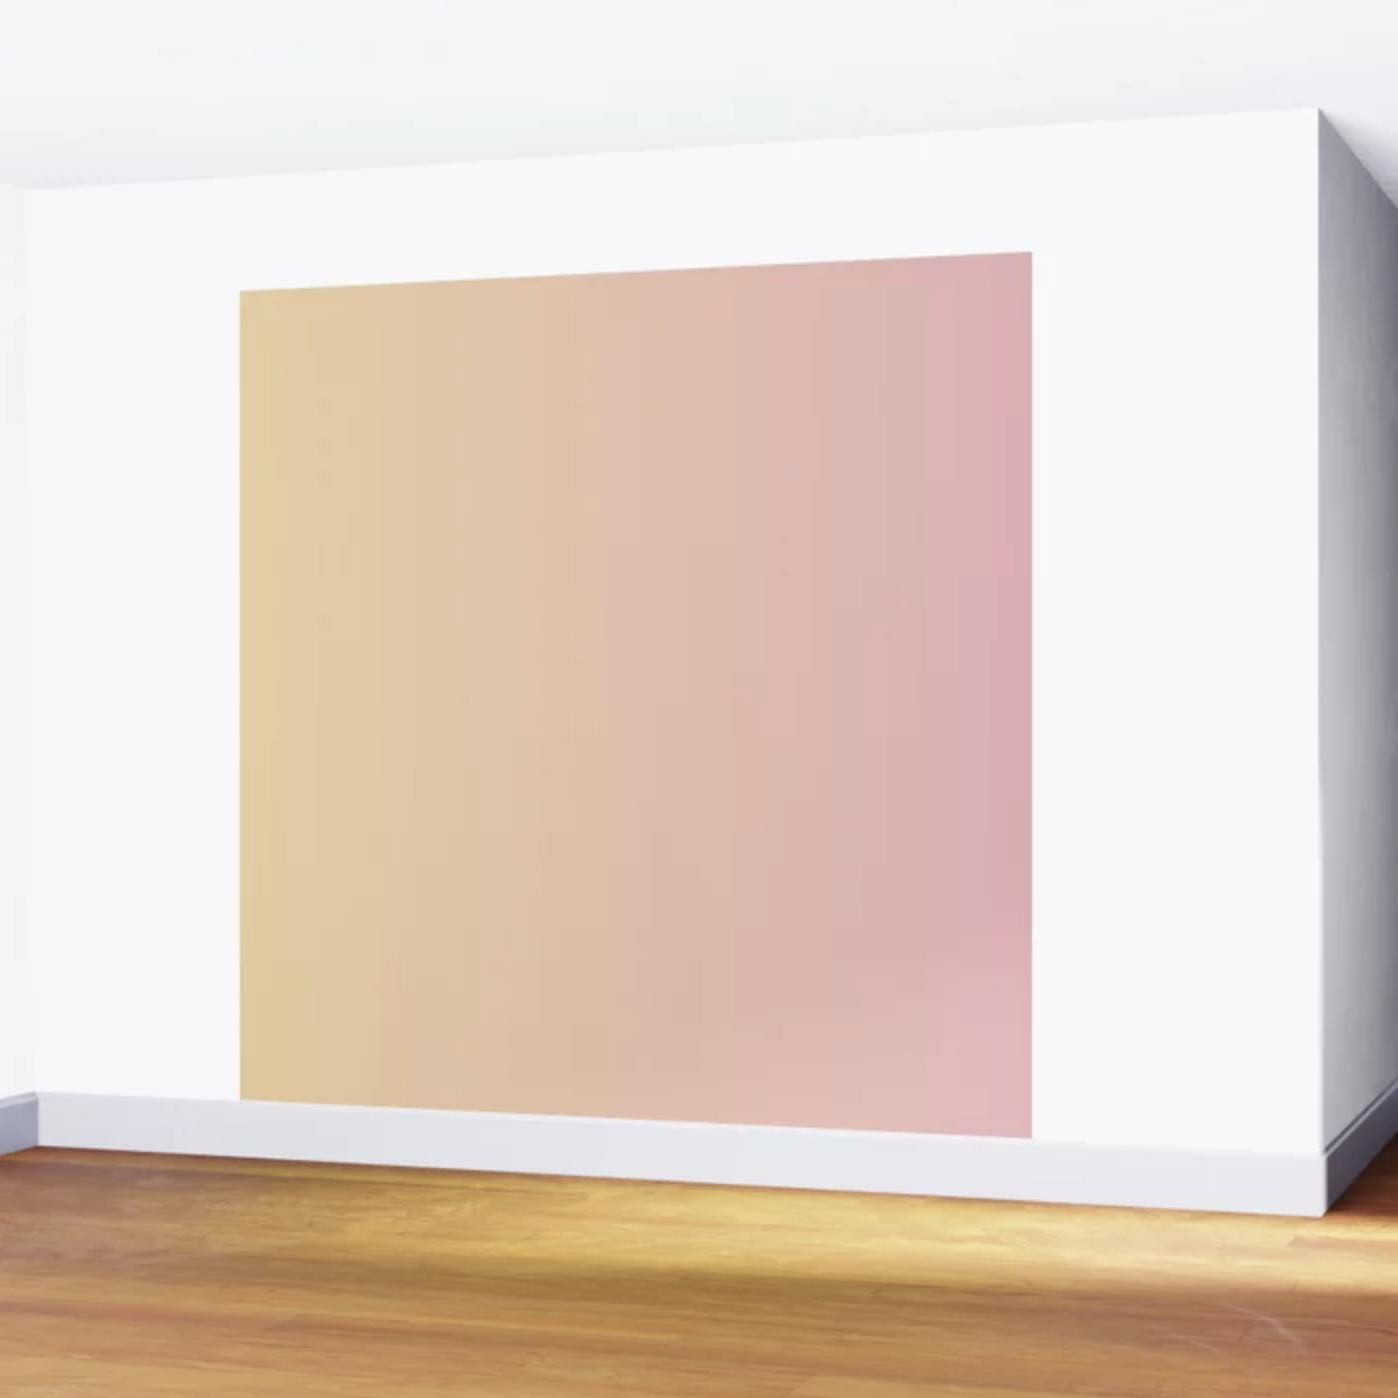 wall mural featuring a gradient fading from yellow to pink